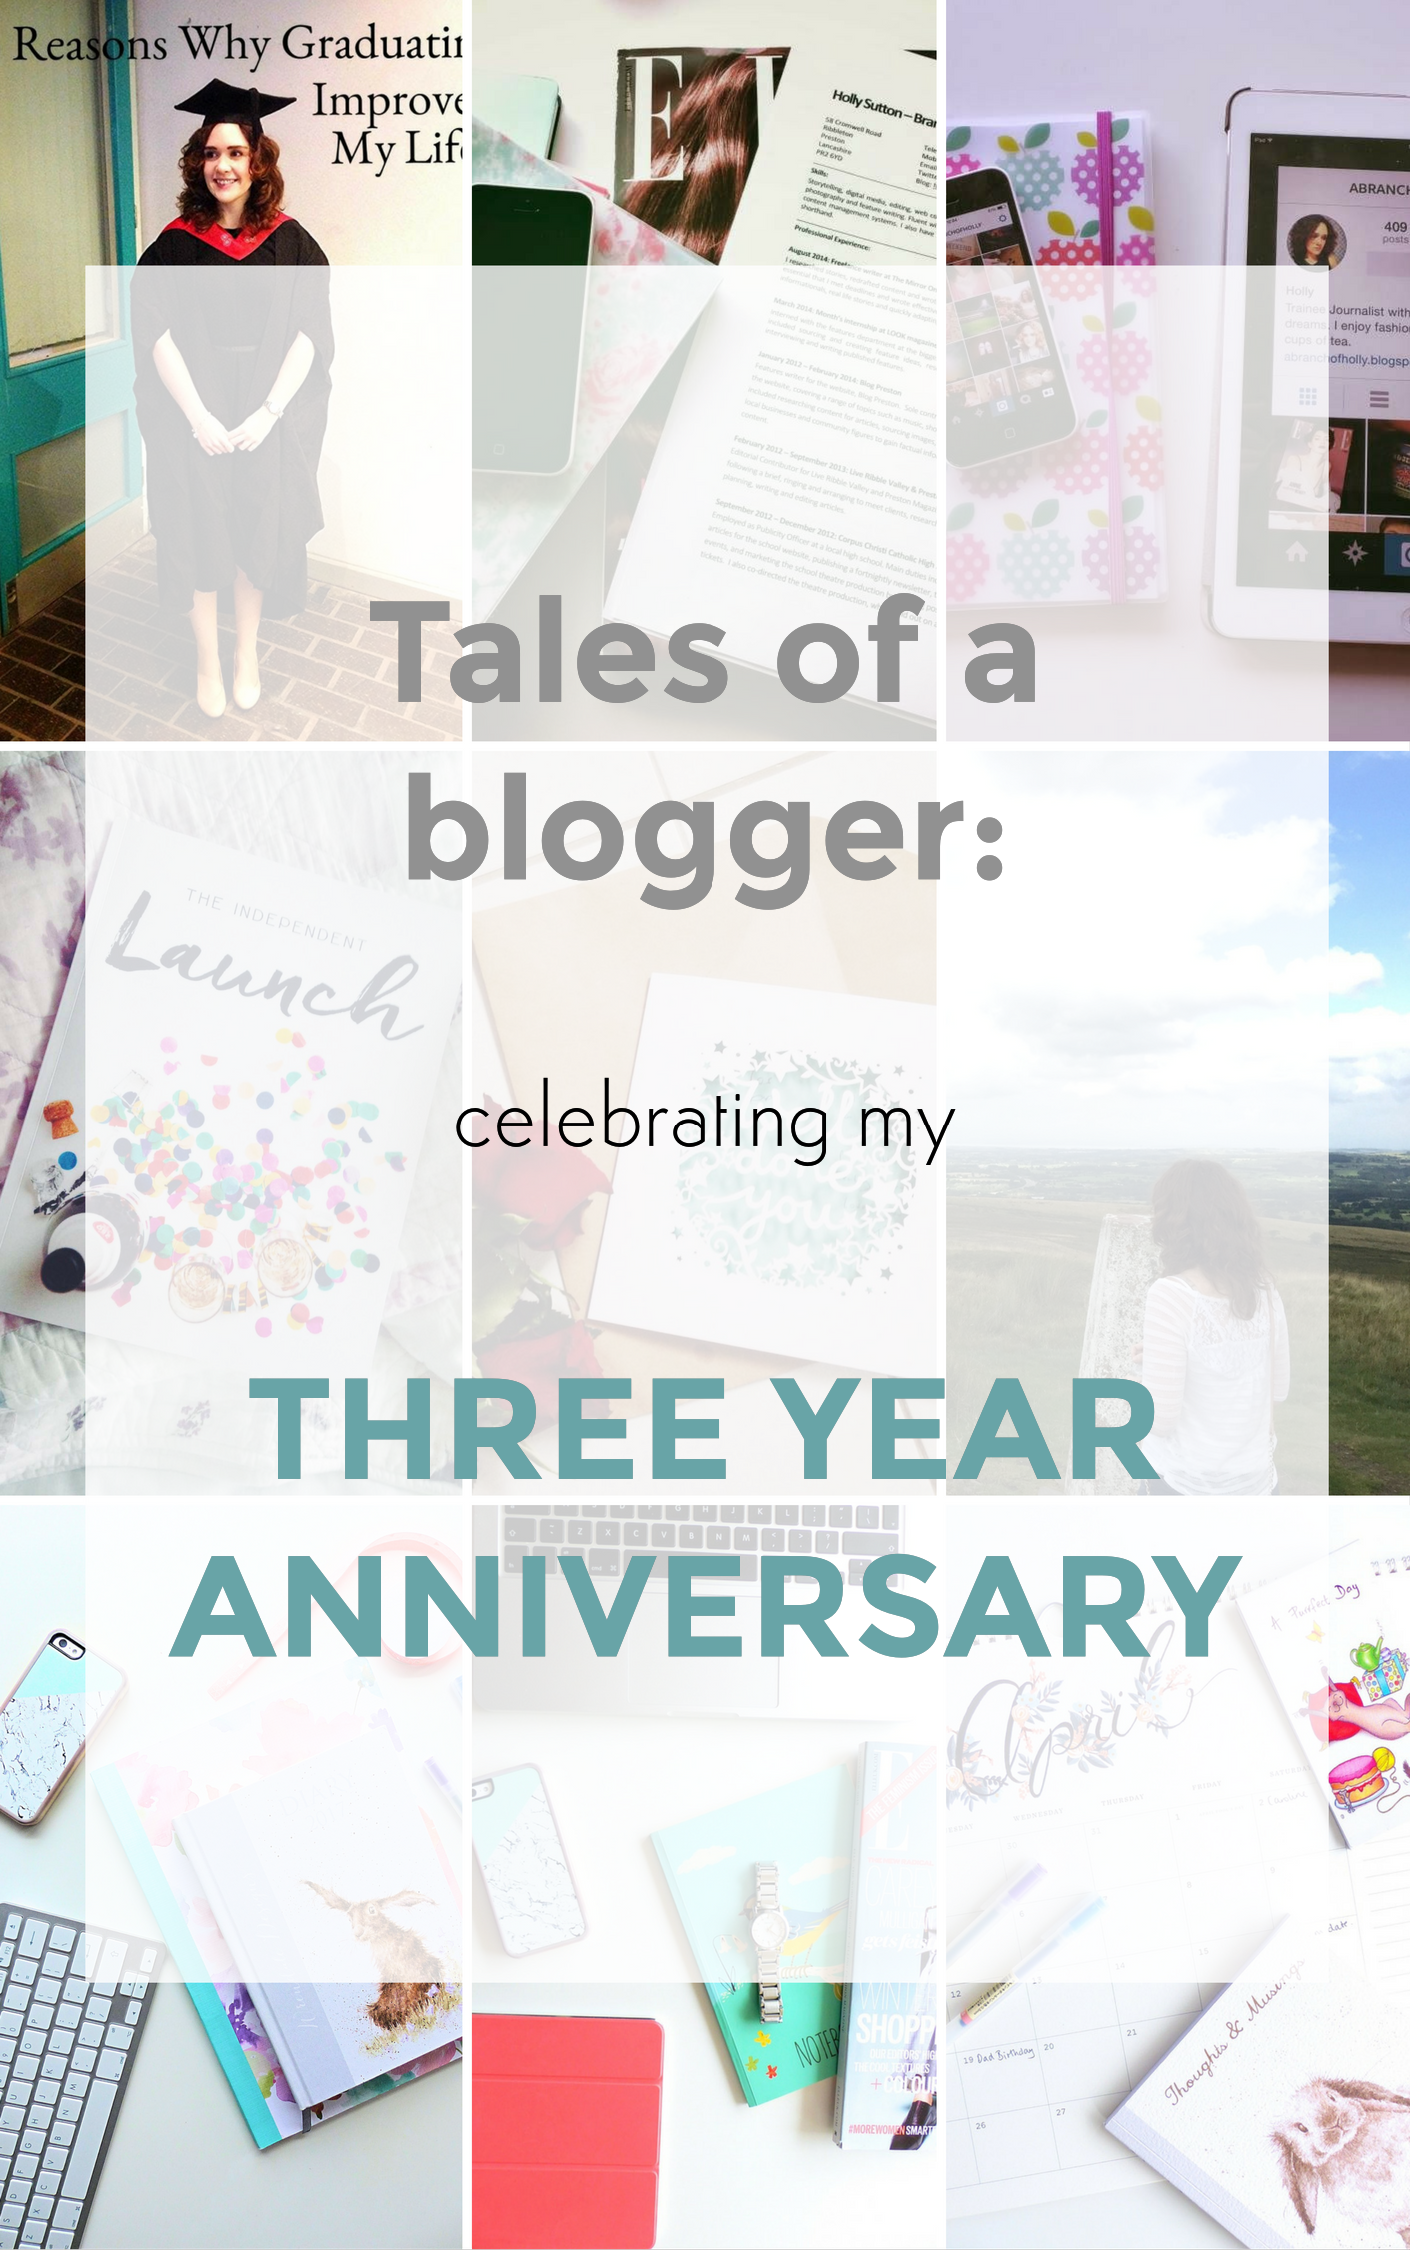 tales of a blogger - celebrating my three year anniversary